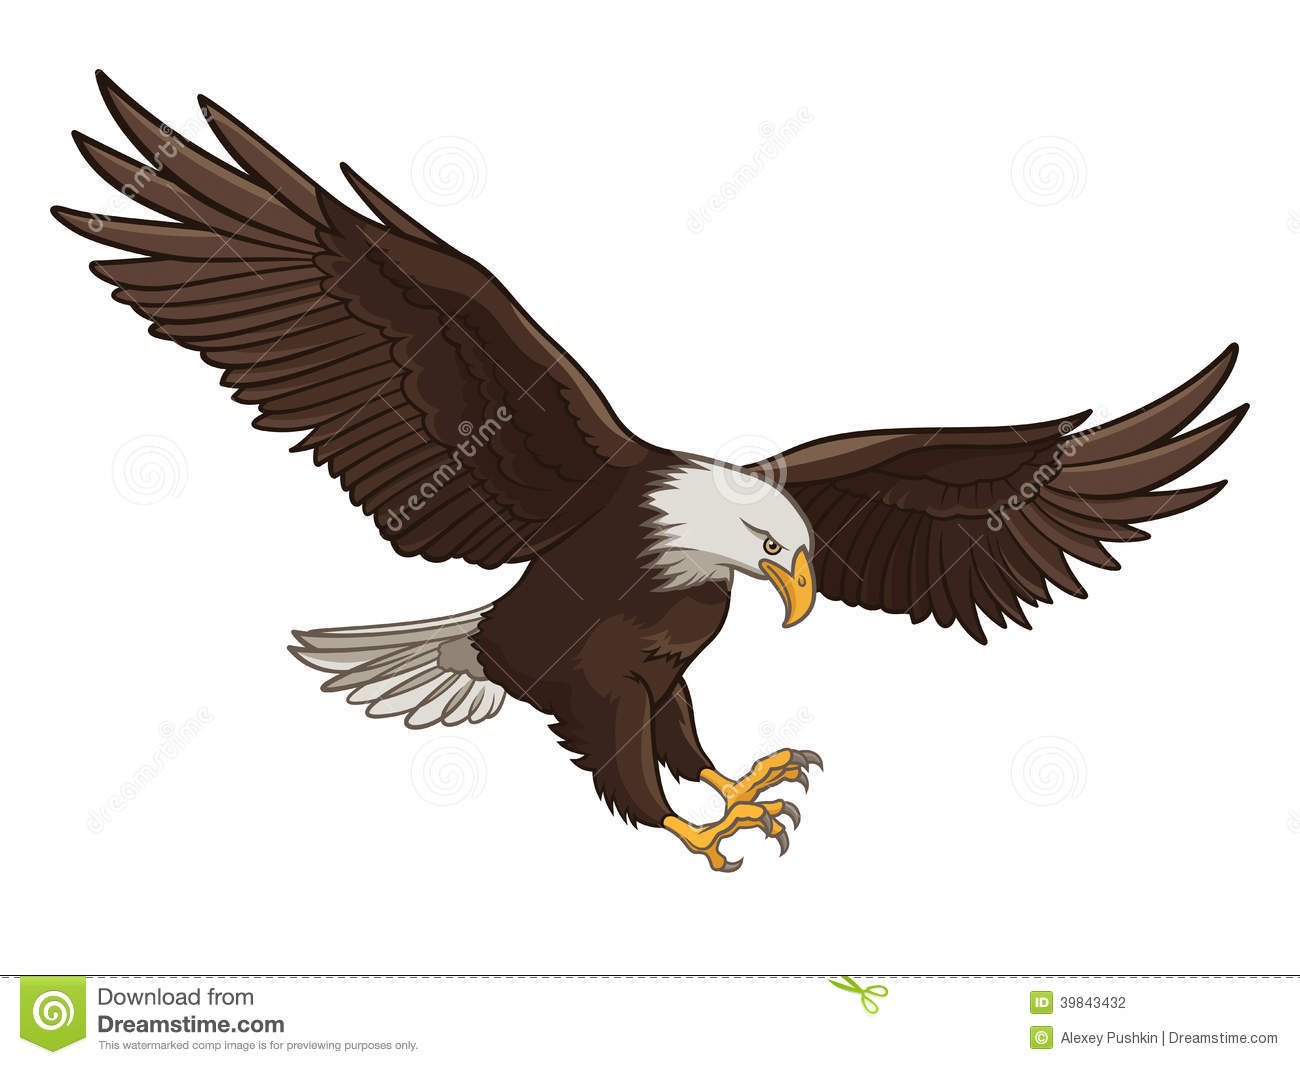 Vector illustration of a Bald Eagle, isolated on a white background.